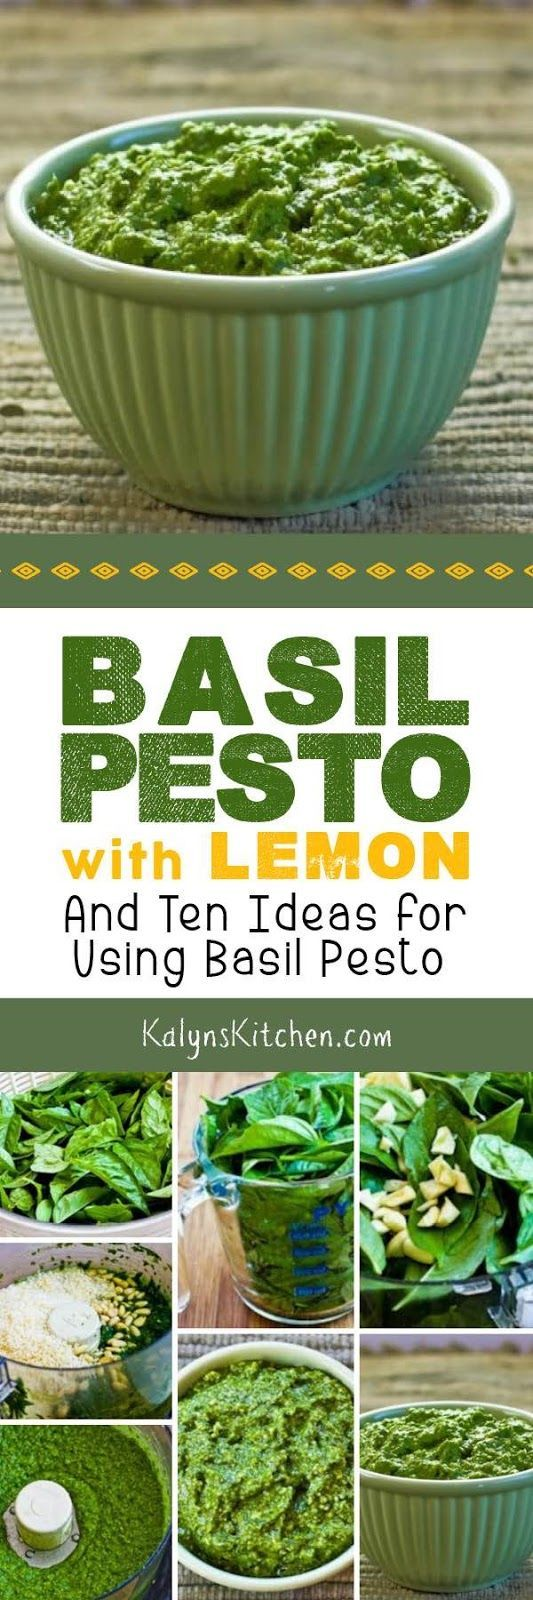 As soon as basil plants start showing up at Trader Joe's I think about summer and making Basil Pesto with Lemon! I've been making this Basil Pesto with Lemon for years and years, so this post also has Ten Ideas for Using Basil Pesto. I promise, this is THE BEST pesto you've ever made! [found on KalynsKitchen.com]